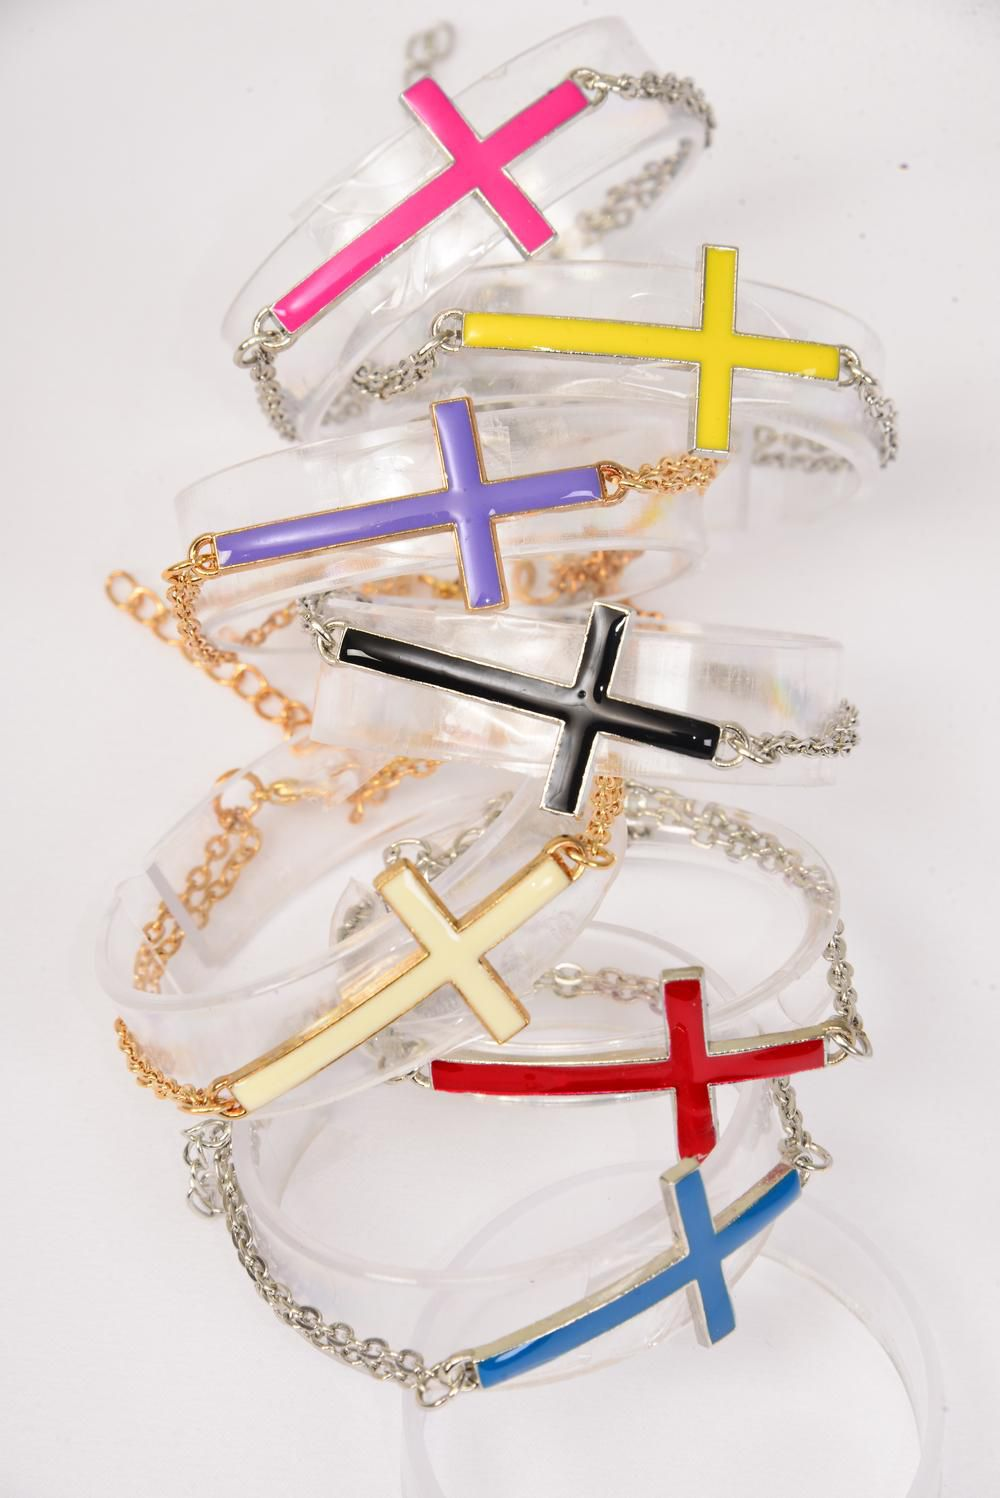 Bracelet Enamel Cross Double Chains Extension Chain/DZ **Adjustable Length** 2 of each Color Asst,Hang Tag & OPP Bag & UPC Code.